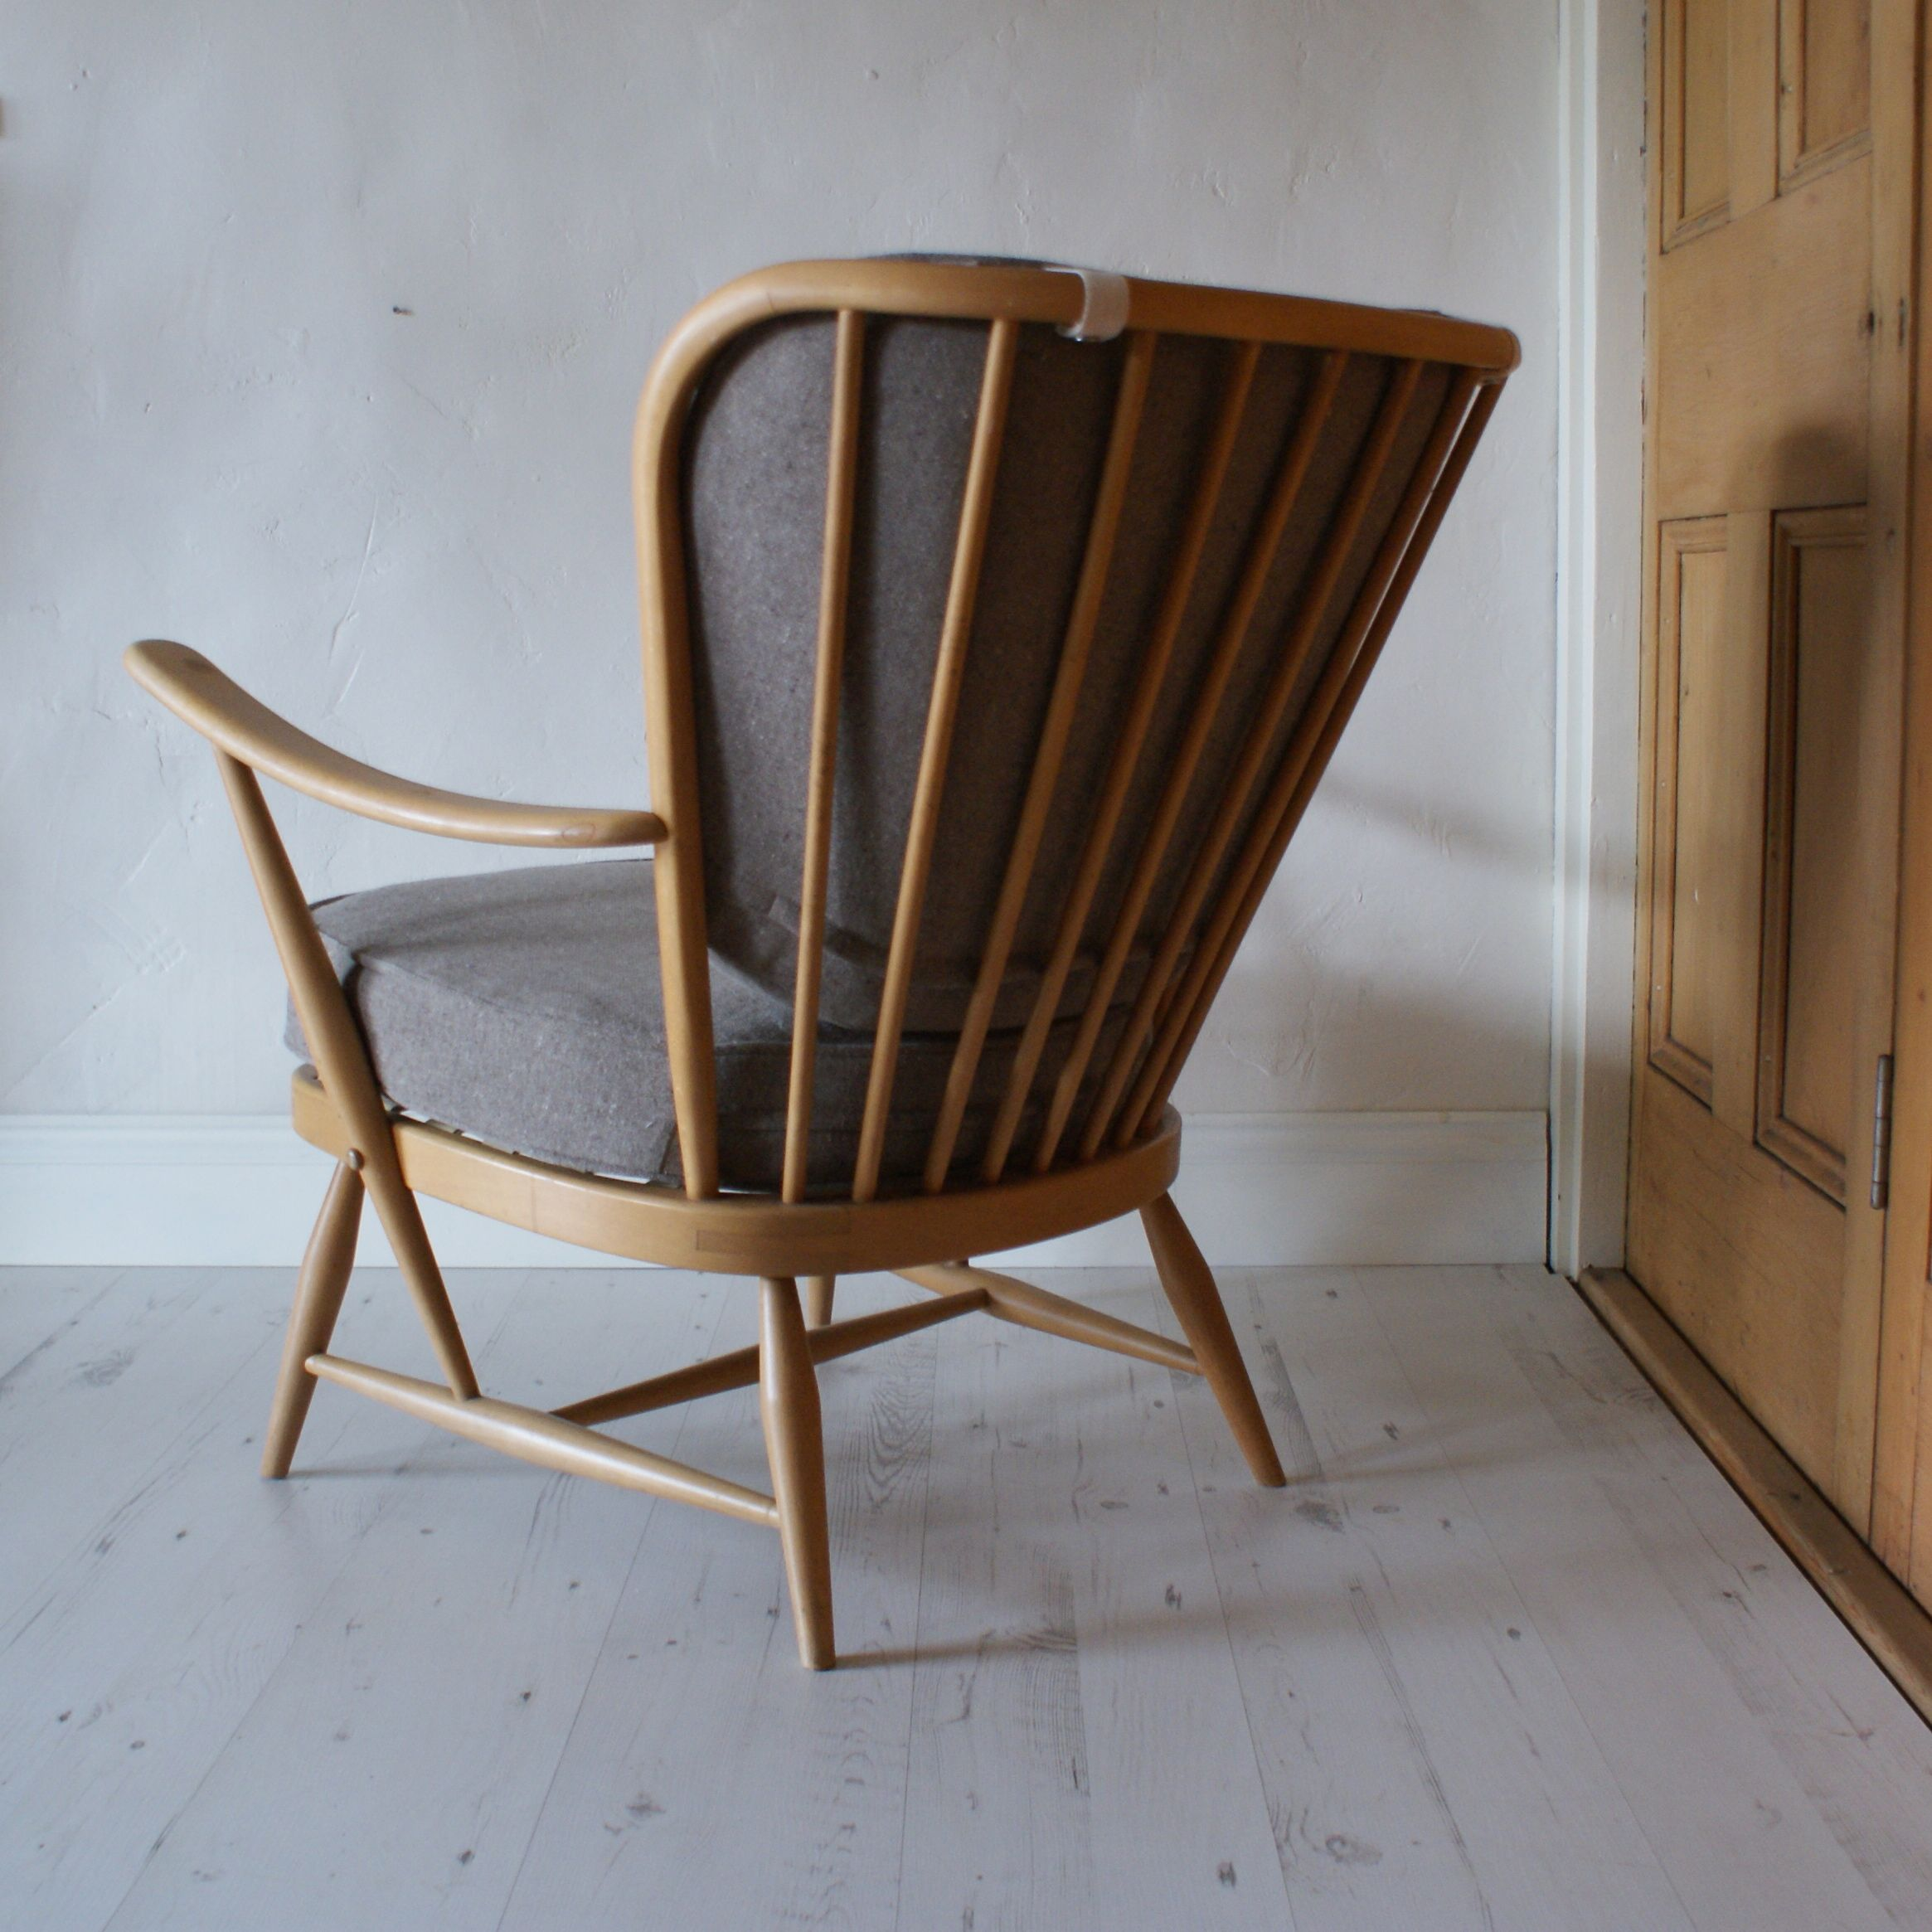 Ercol Windsor Armchair (With images) | Retro chair ...